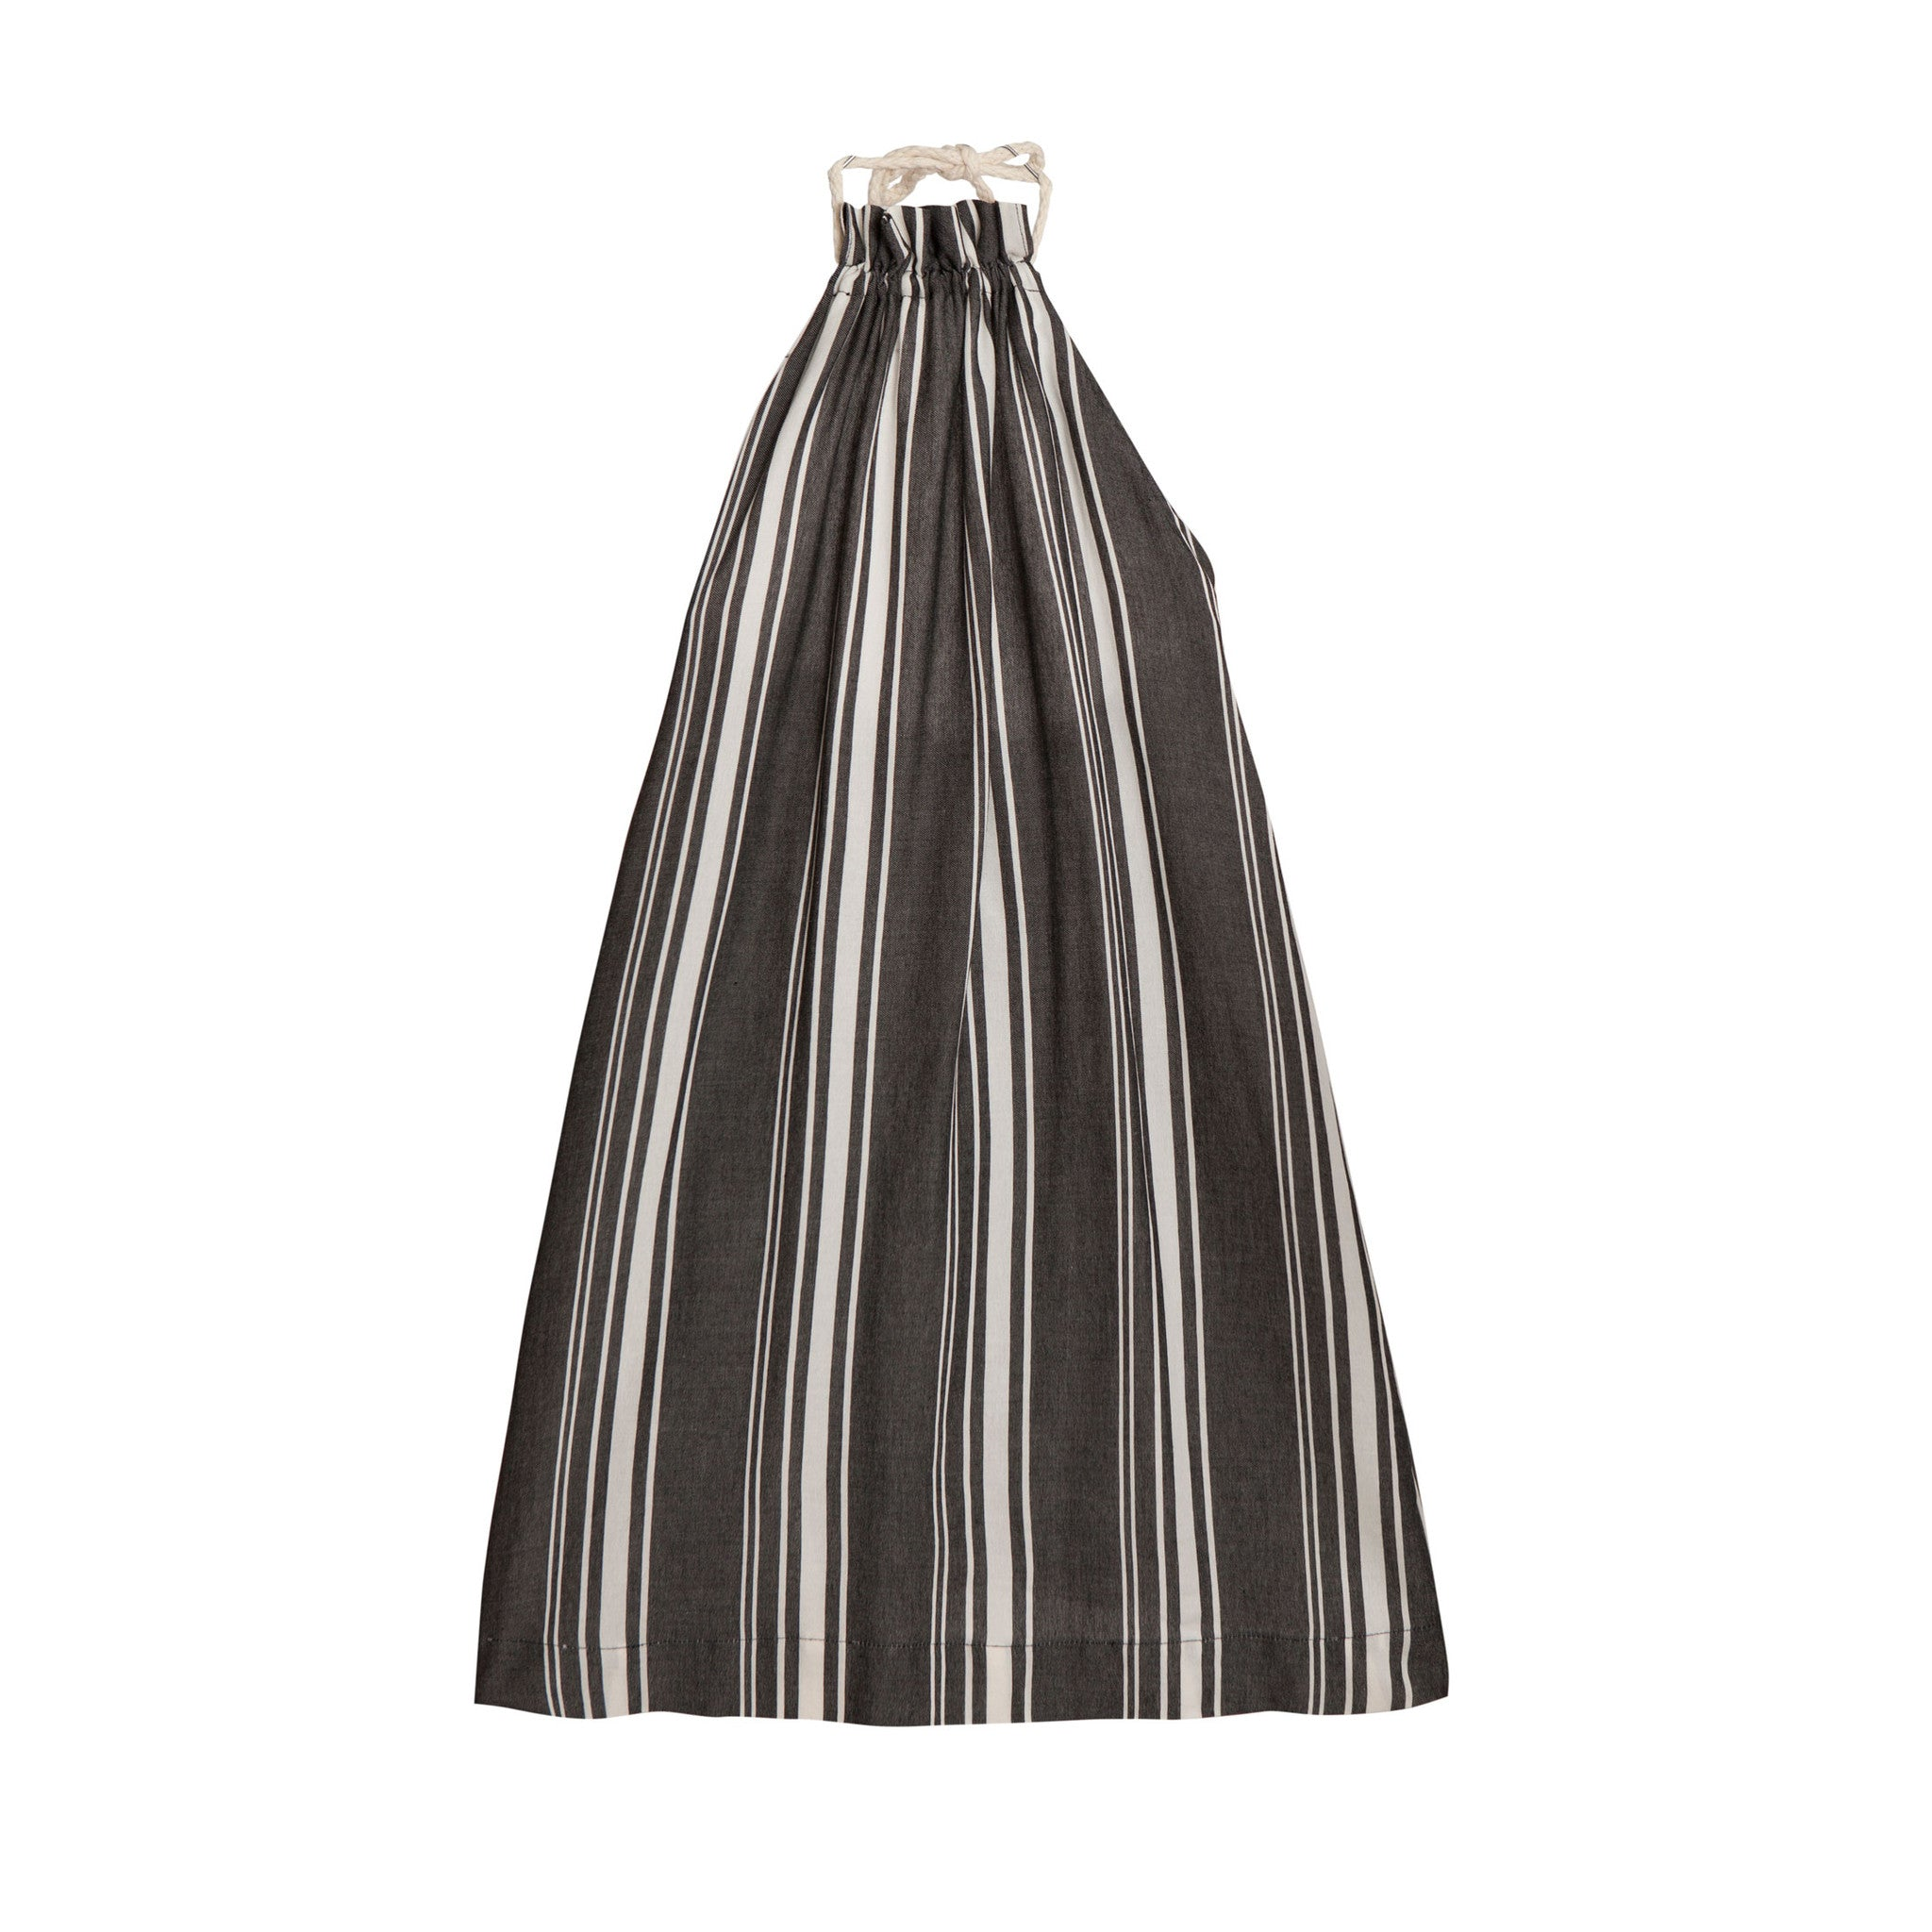 Little Creative Factory Dark Stripes Tuareg Apron Dress - Ladida